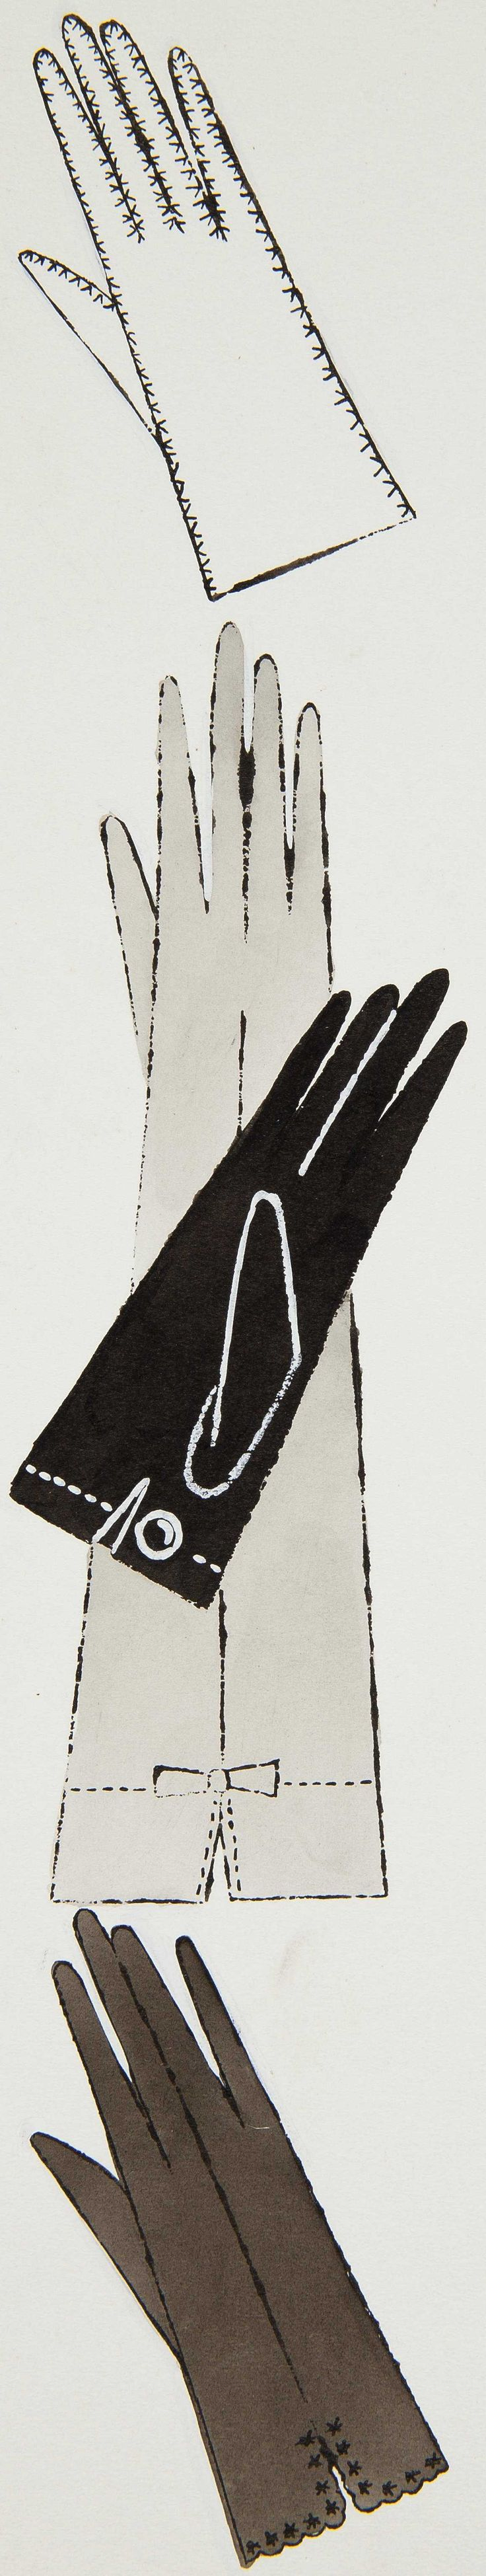 Four Gloves.  Andy Warhol